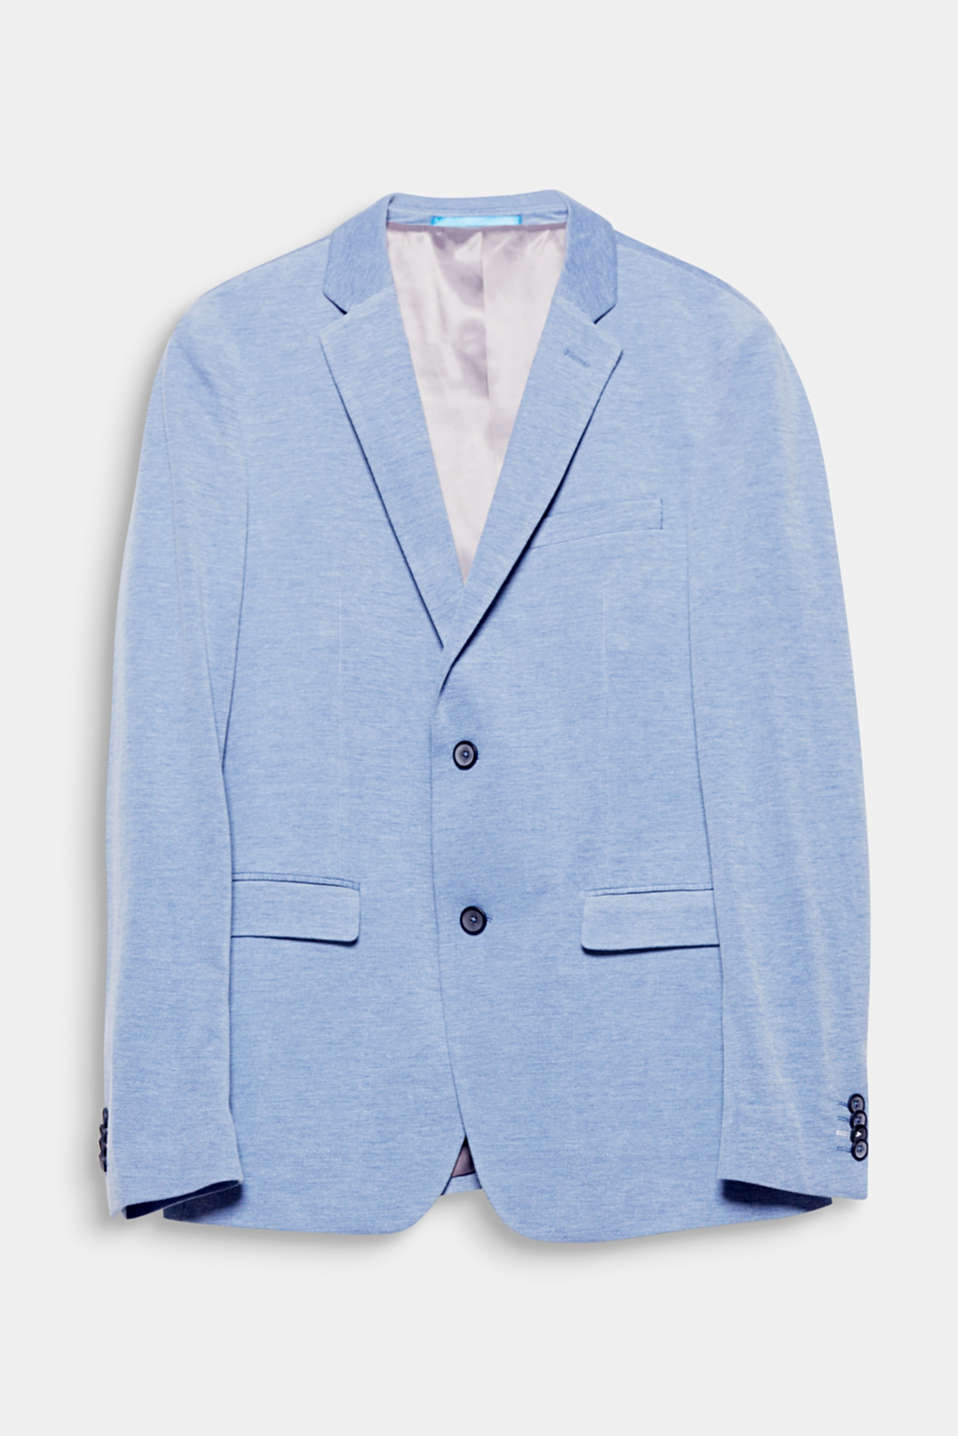 Extra slim! The extra slim fit and the two-tone jersey give this tailored jacket a modern summery look.